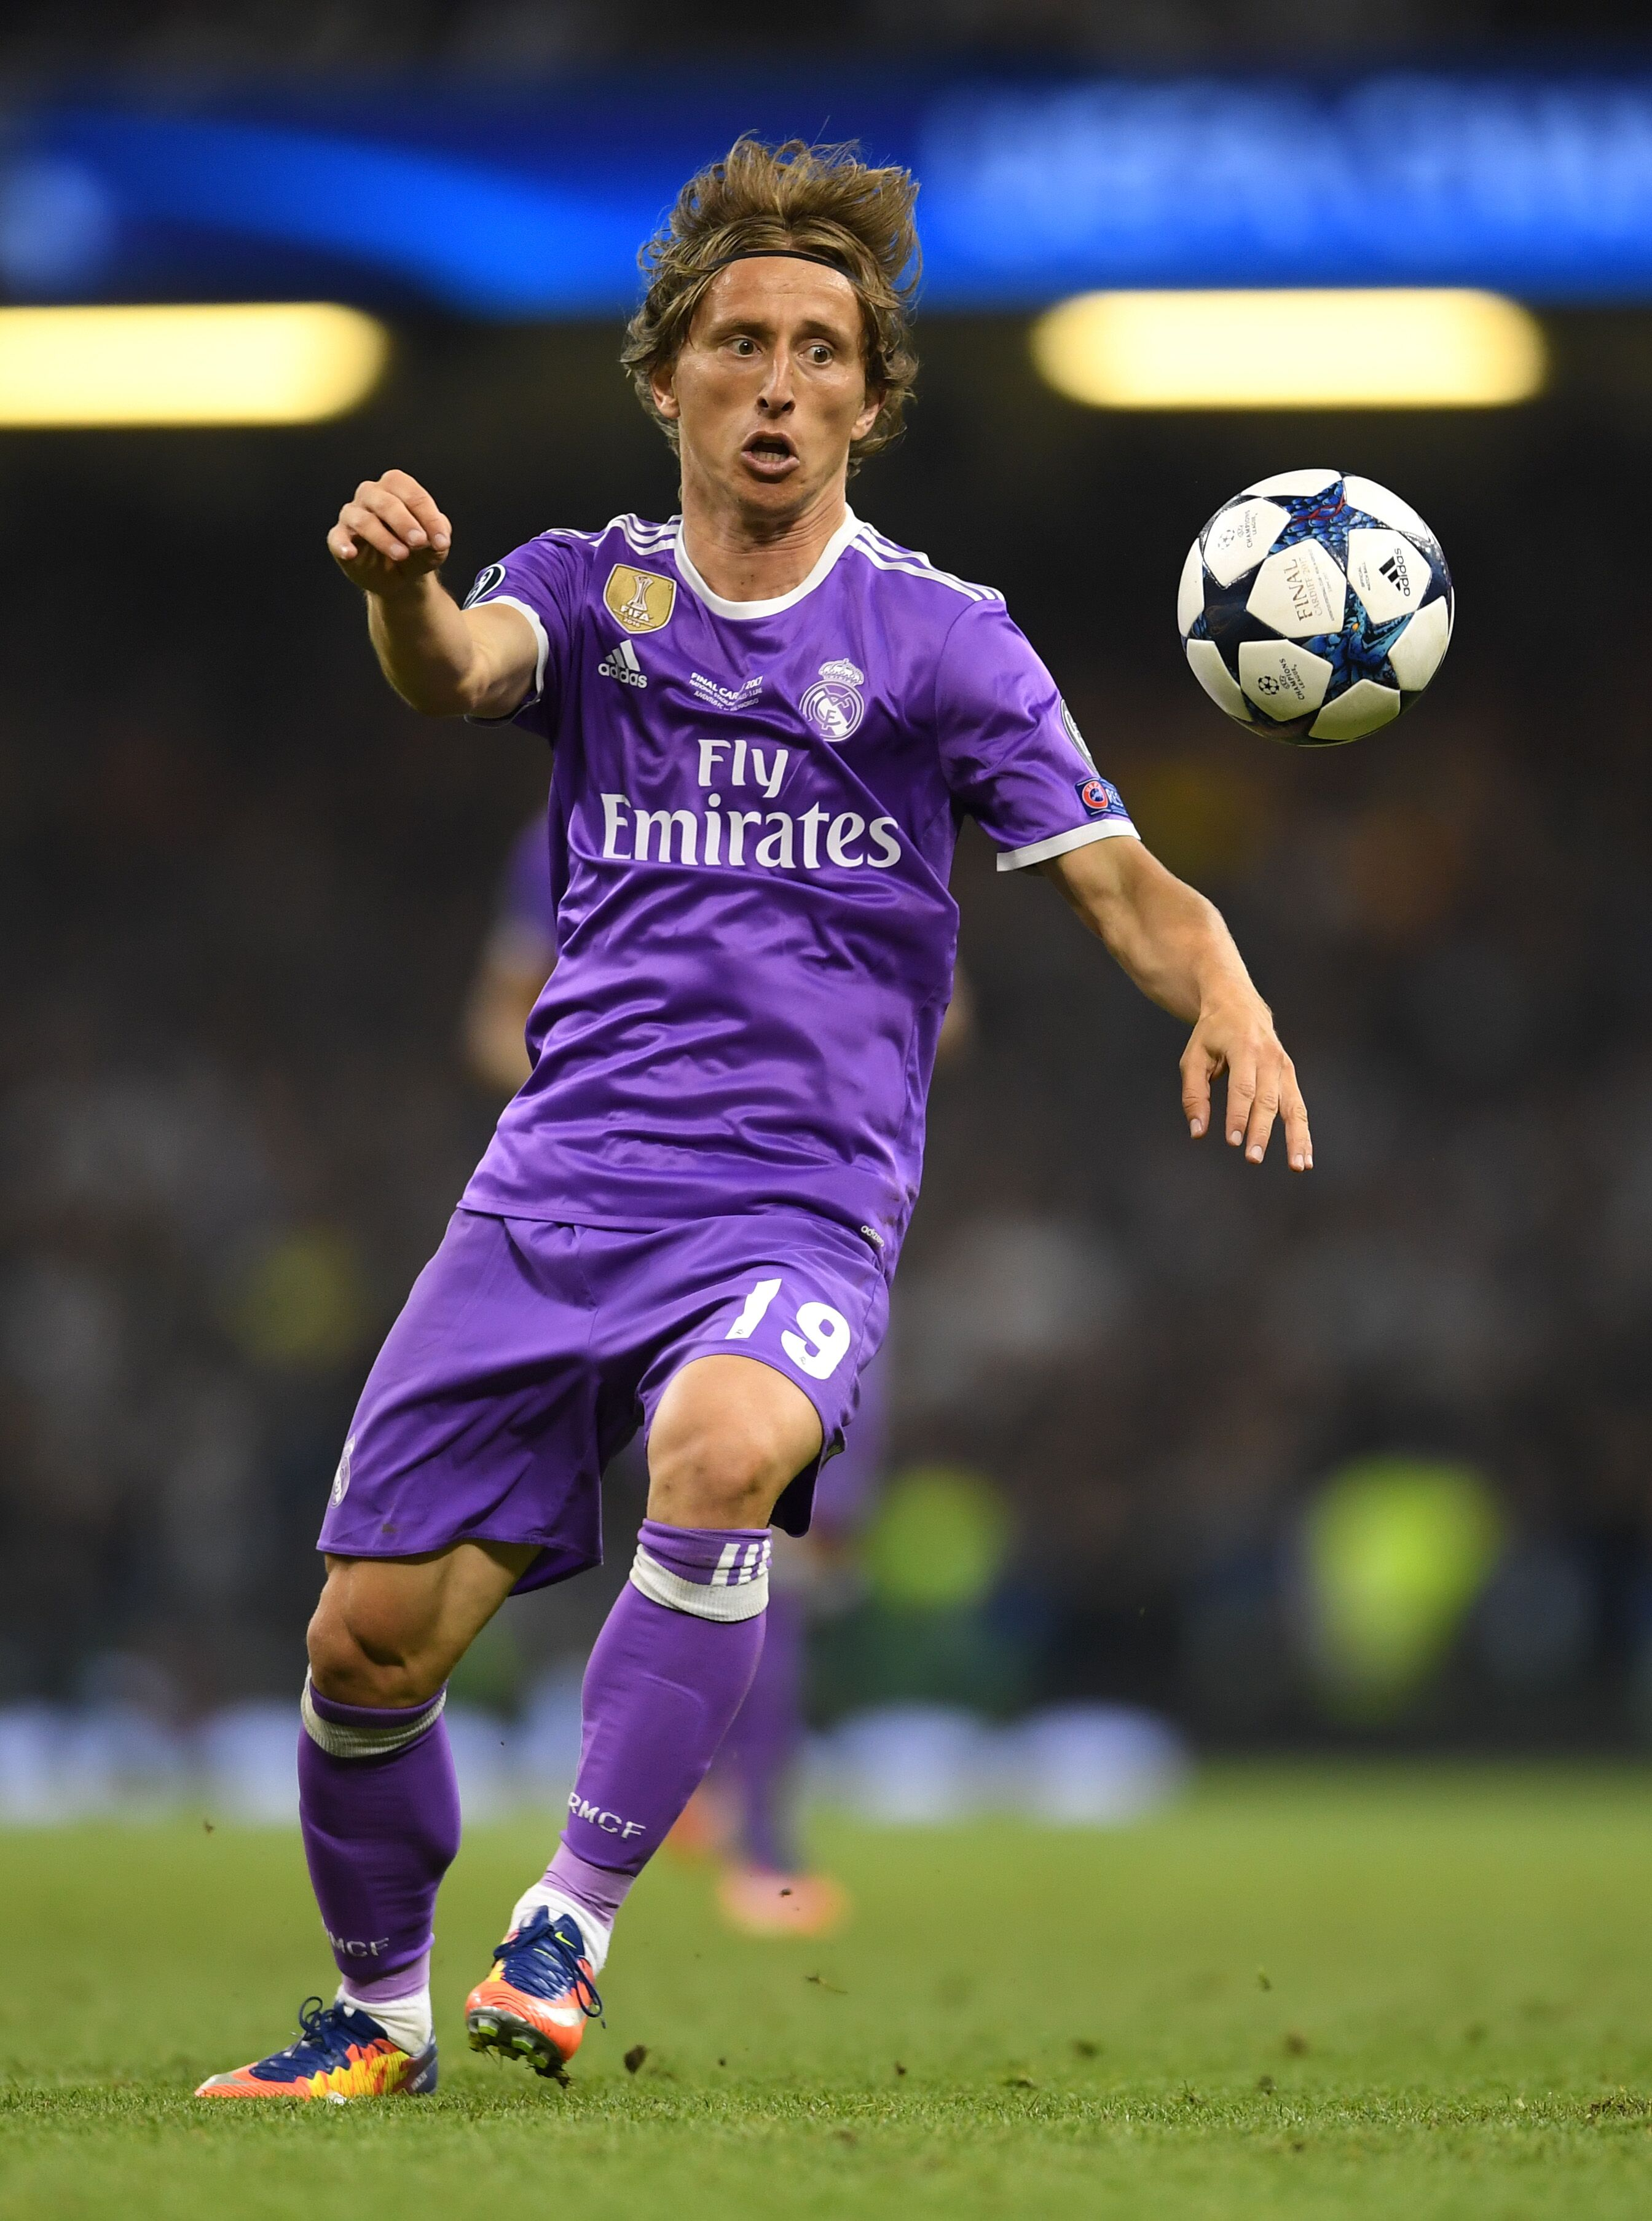 Real Madrid S Luka Modric Could Be Facing Jail Time For Perjury